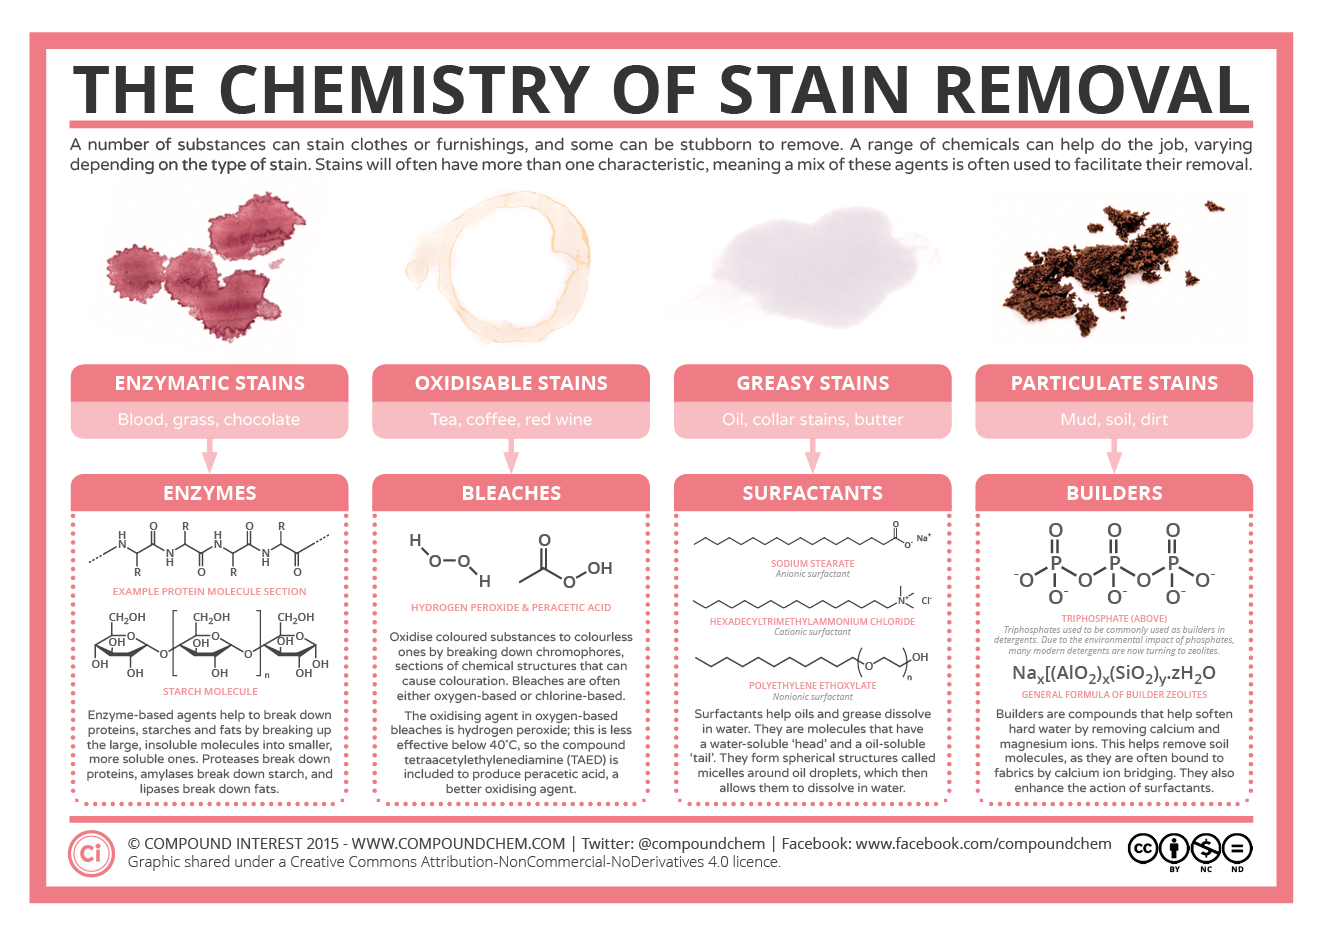 Compound interest the chemistry of stain removal - Coffee stains oil stains get rid easily ...